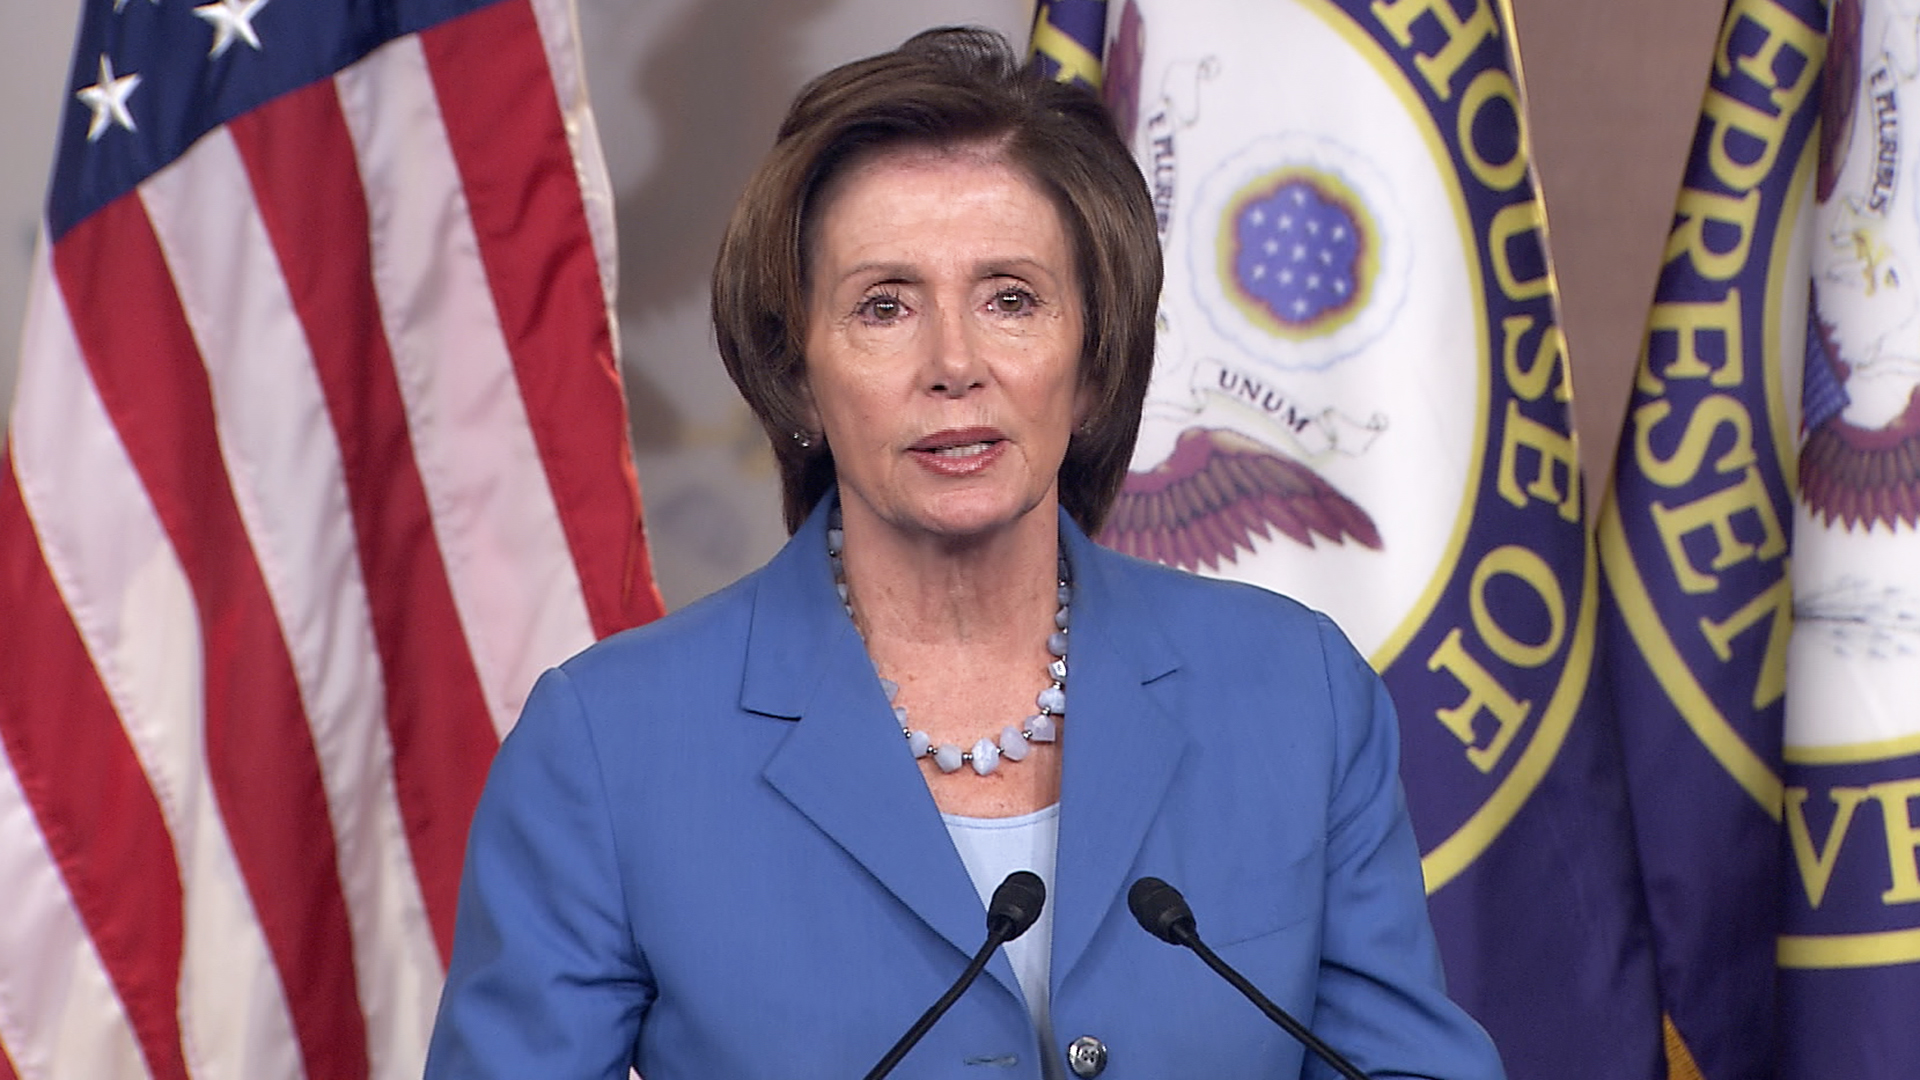 Pelosi: Republicans 'Have Time' to Sue the President